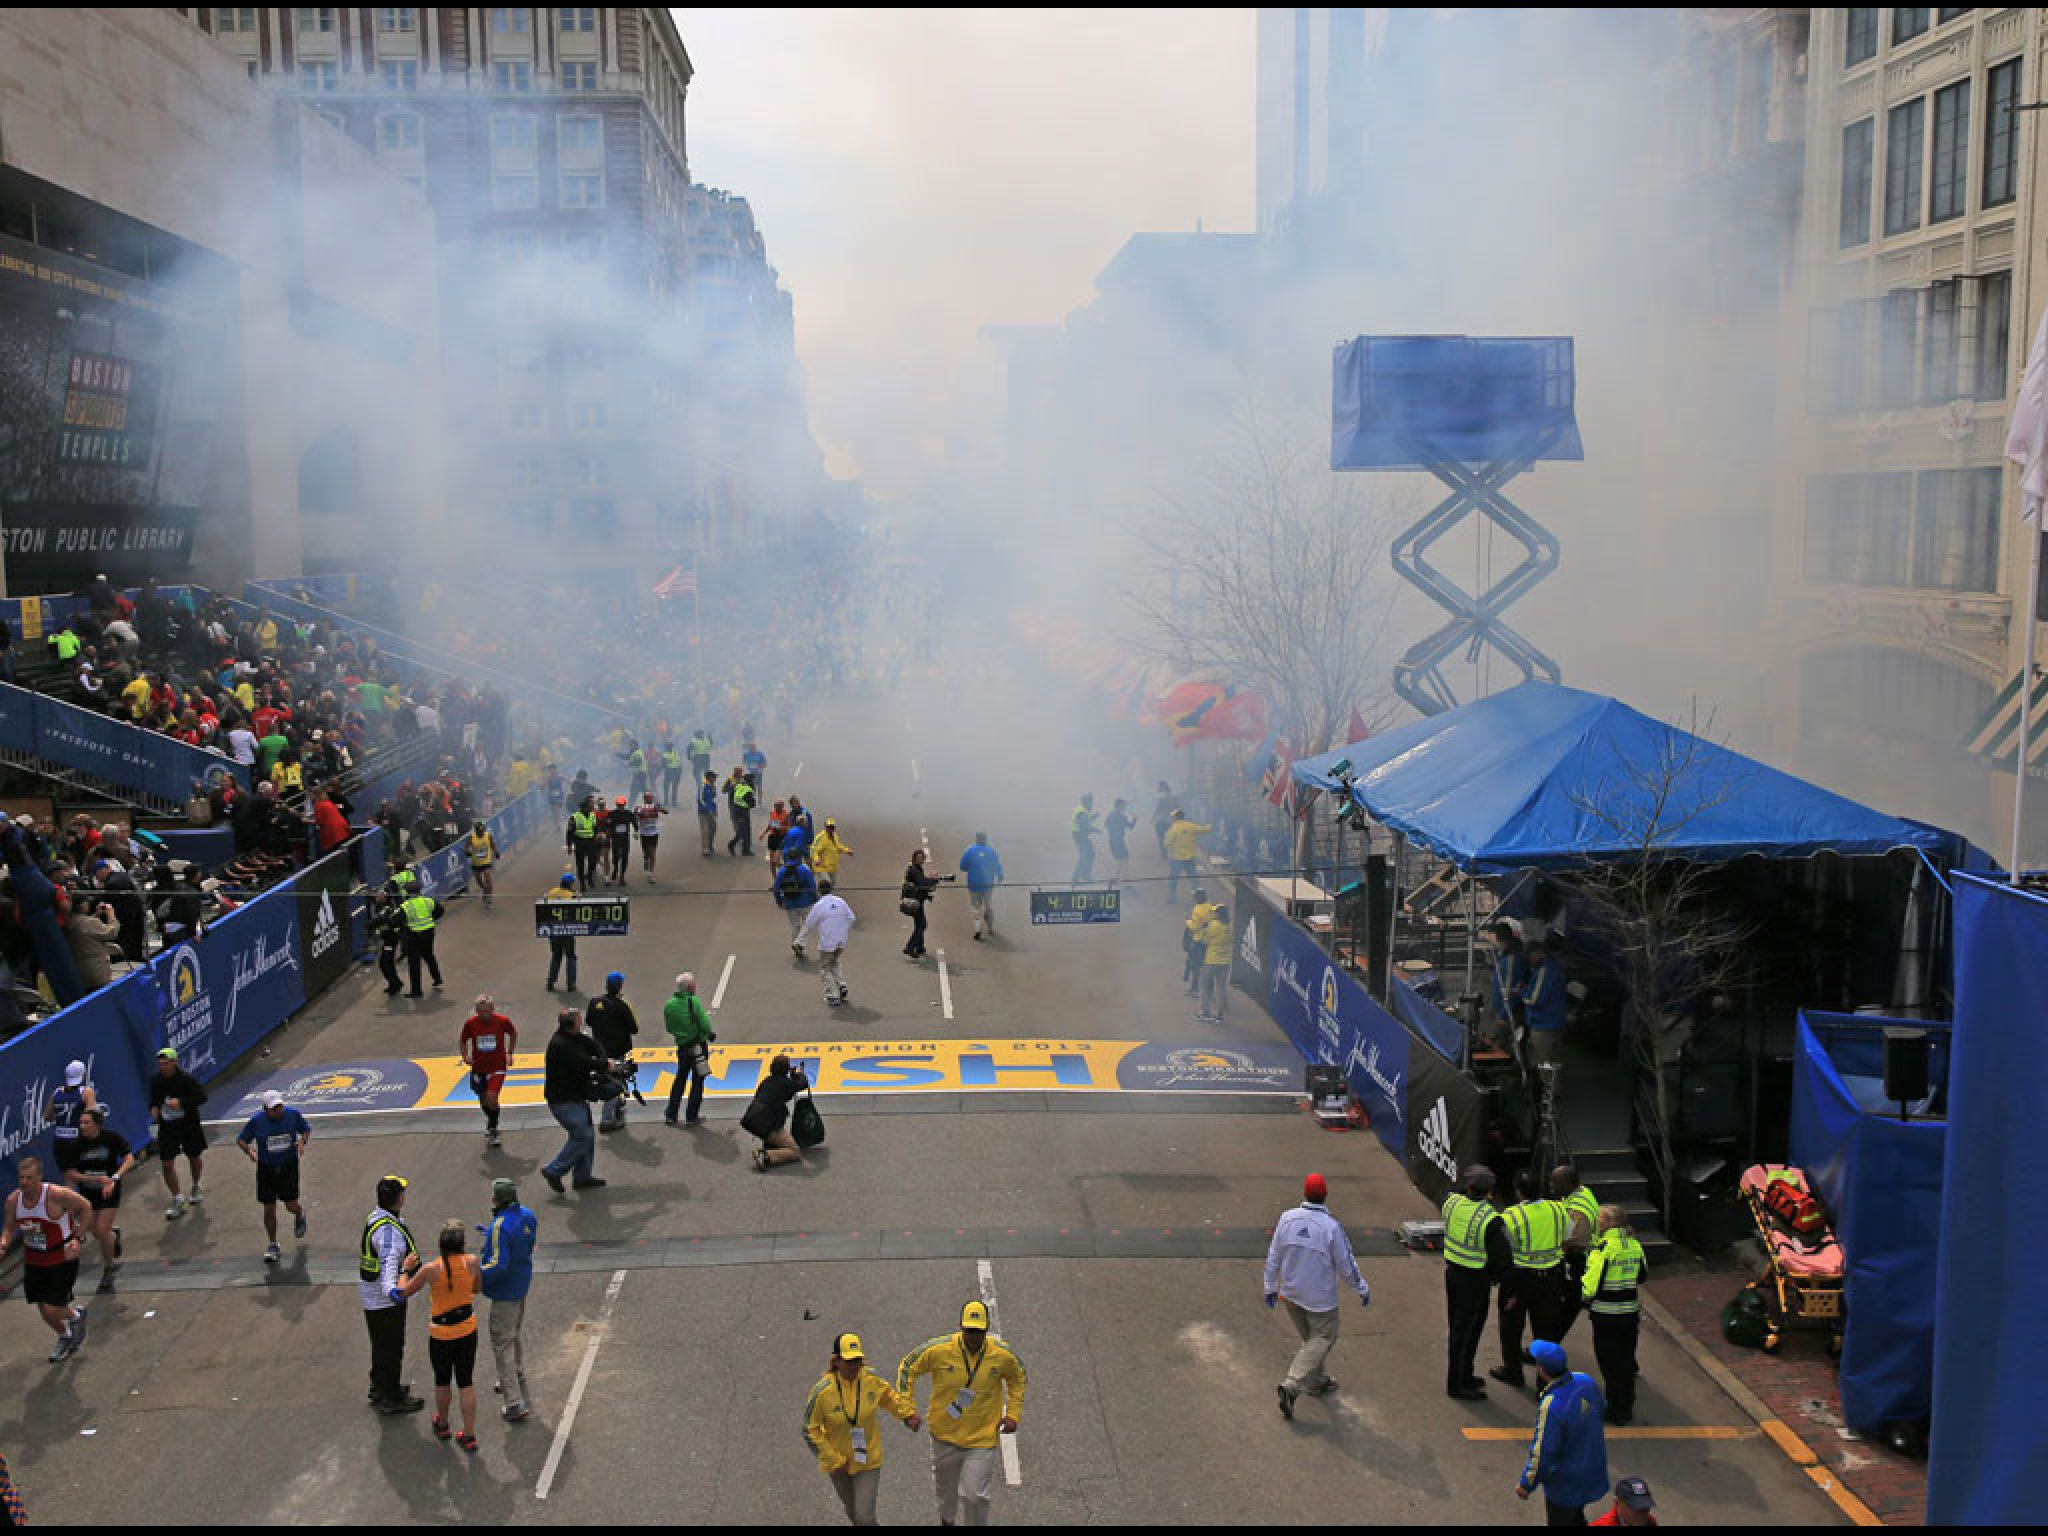 Lifting-Up ALL Involved in the Explosion: Victims/Family/Friends/First Responders/Hospitals (Dr. & Nurses), etc in Prayer!!!  Deadly Bombs Strike Boston Marathon:  http://www.cnn.com/2013/04/15/us/boston-marathon-explosions/index.html